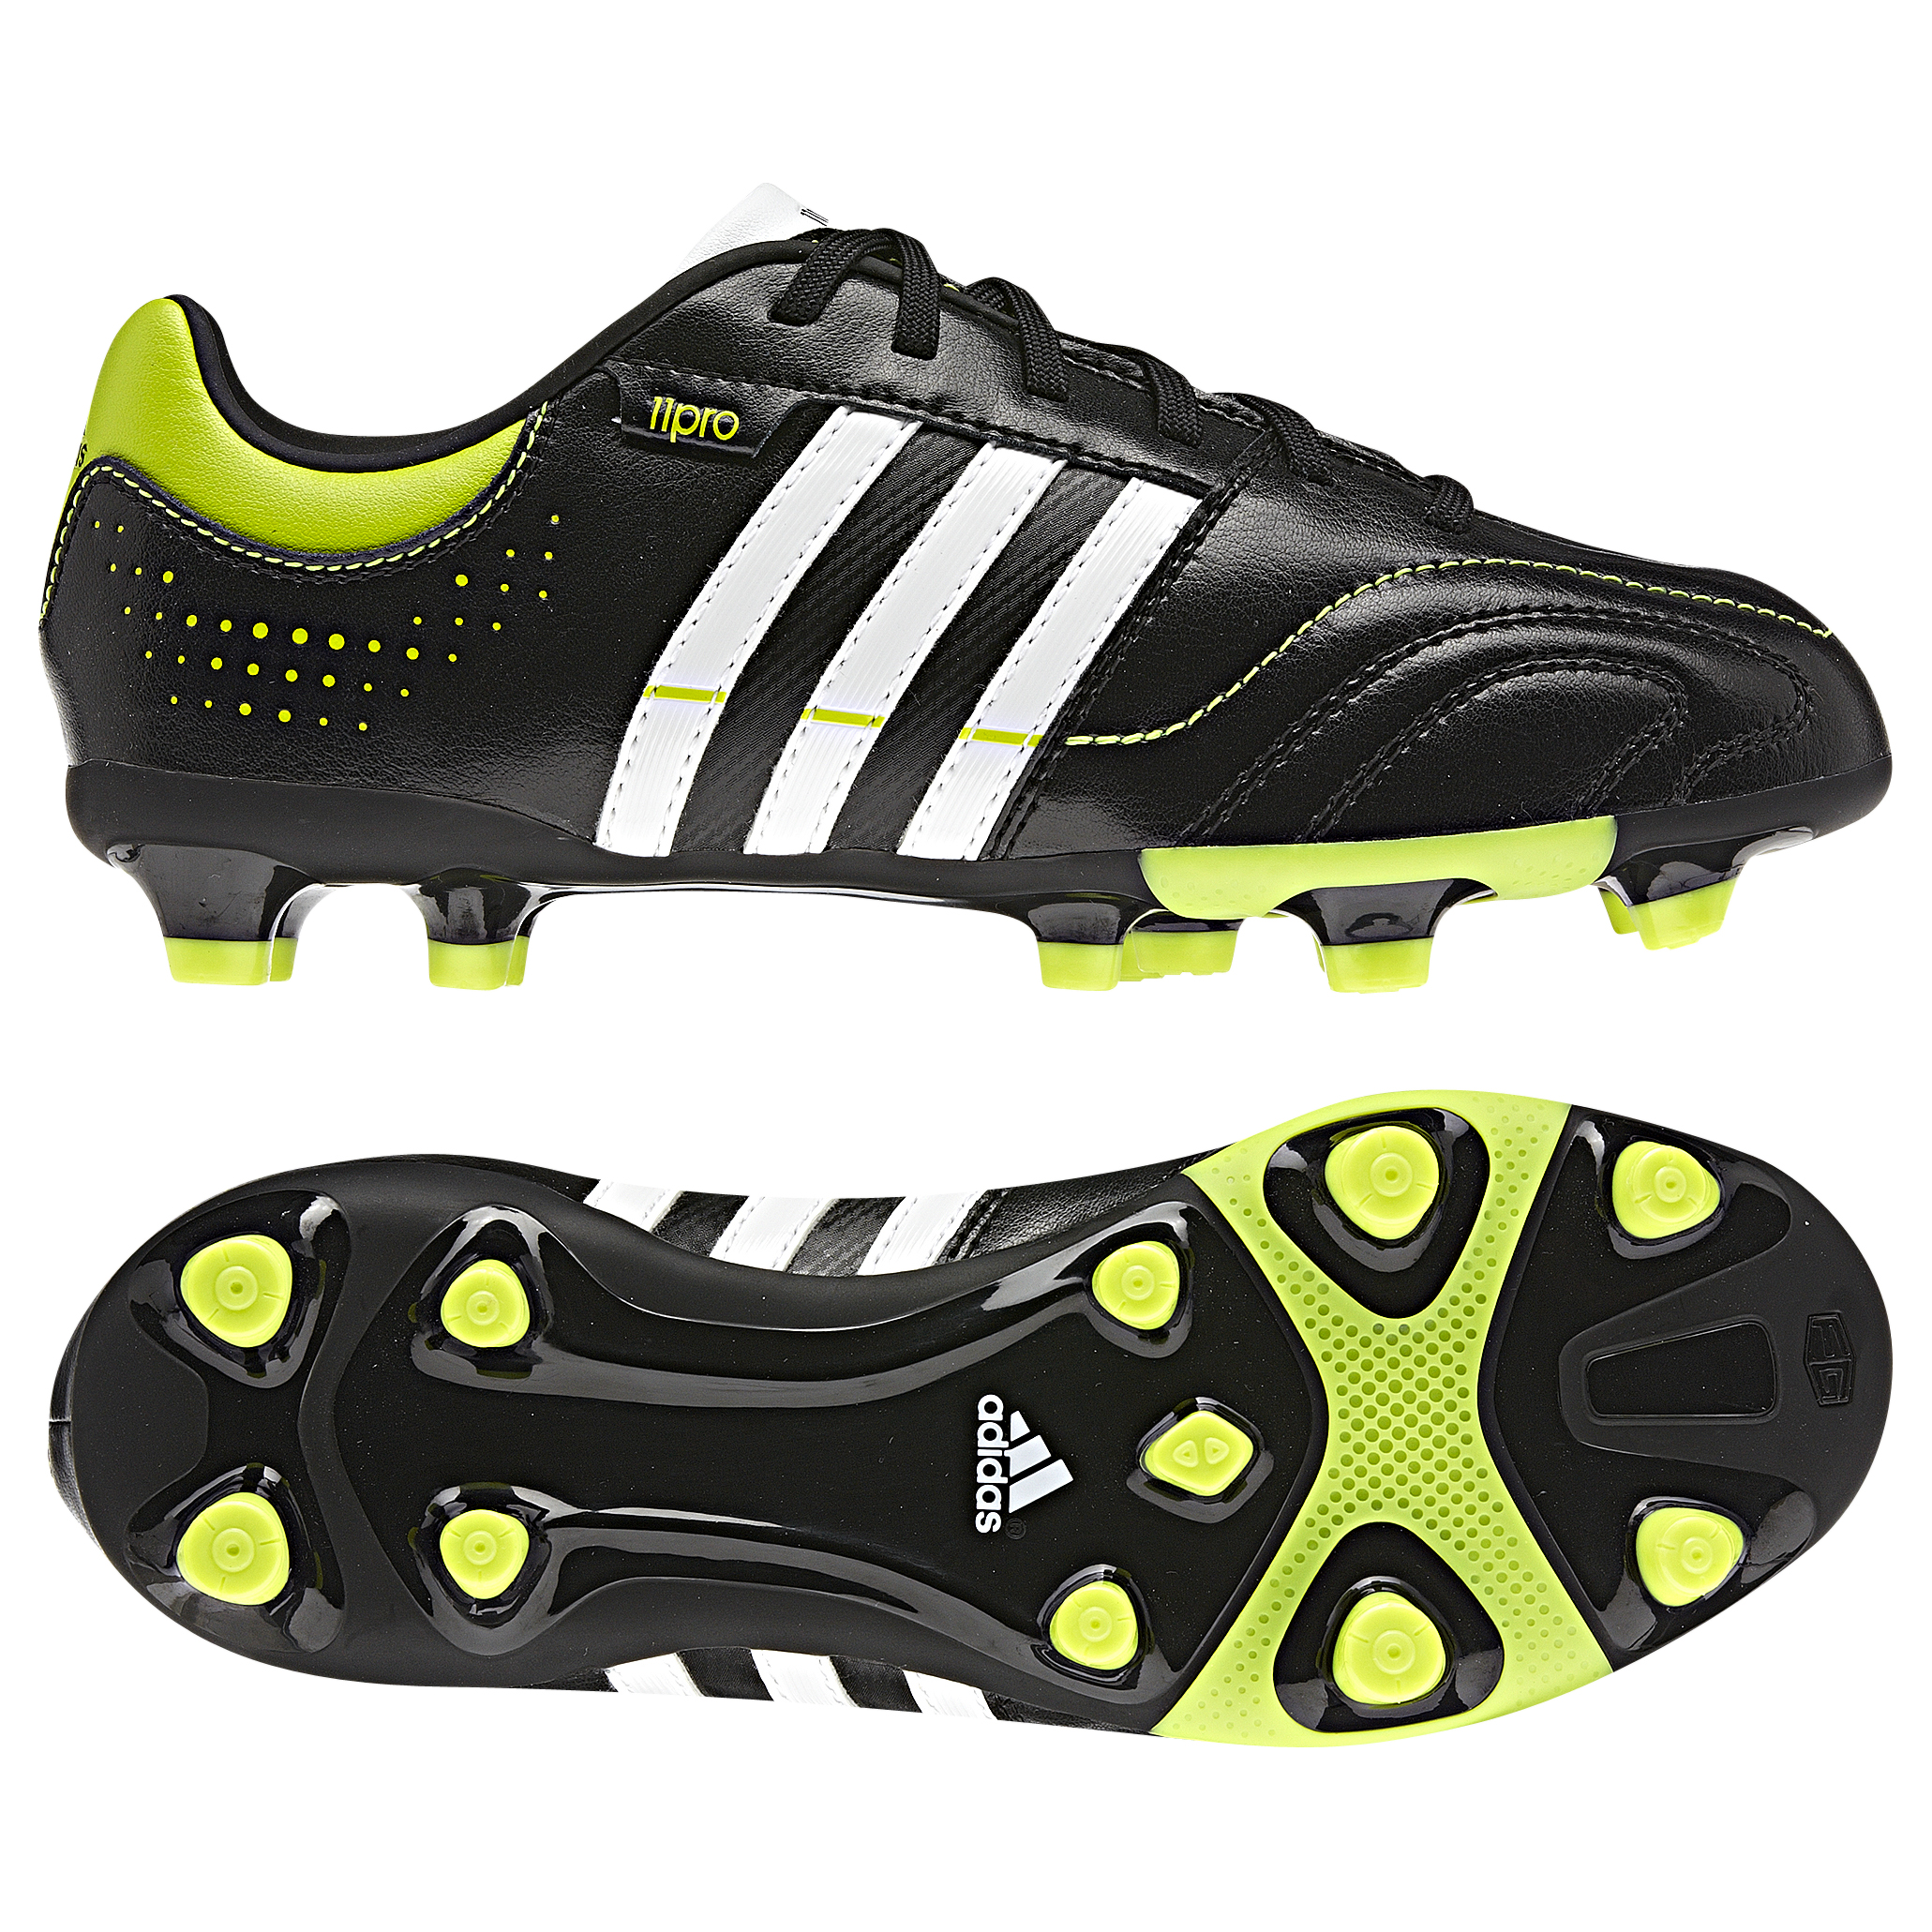 adidas 11Nova TRX Firm Ground Football Boots - Black/Running White/Slime - Kids